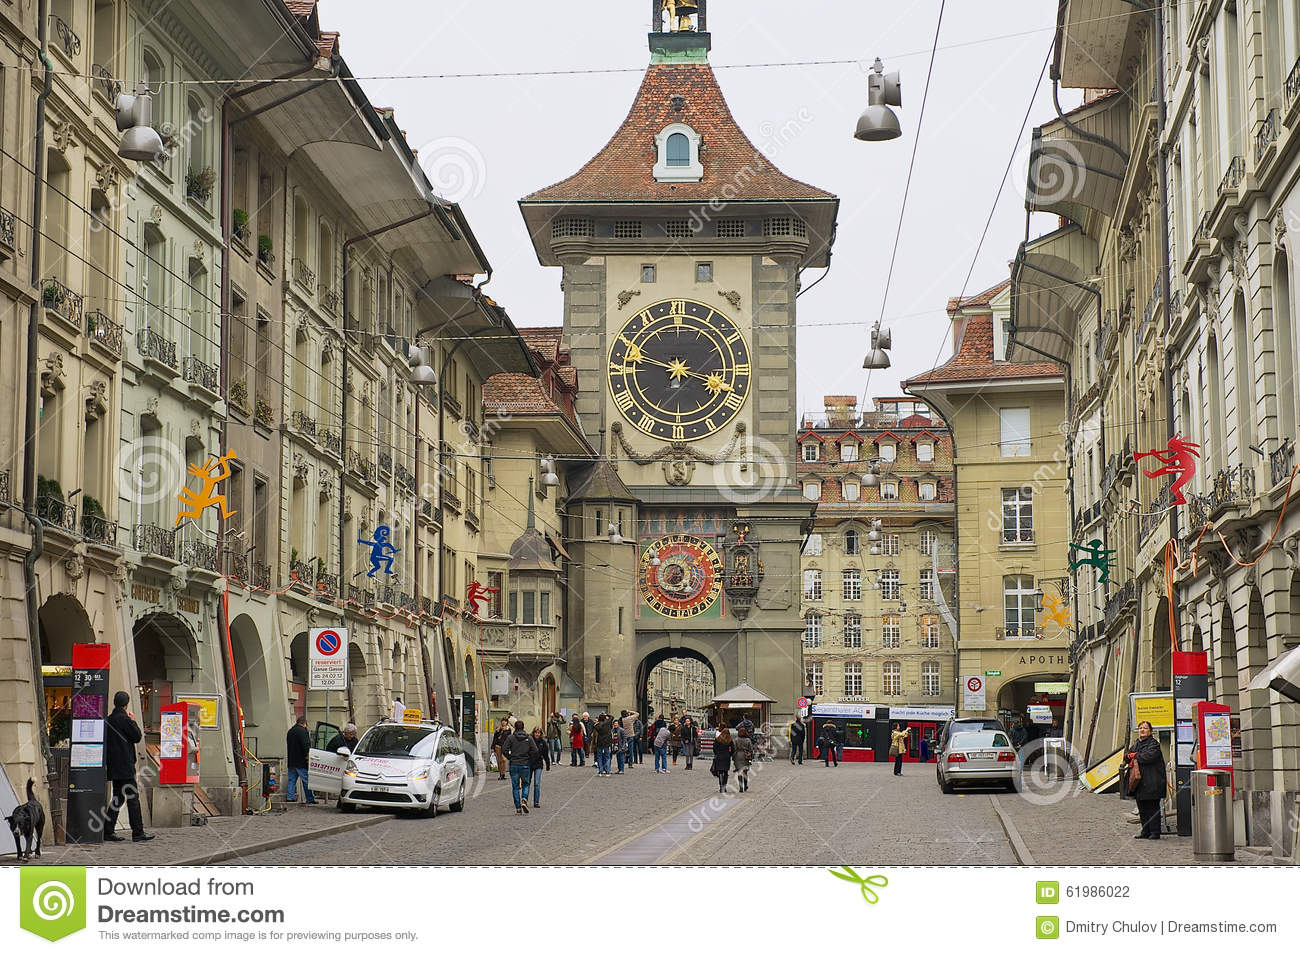 People Walk By The Street With The Historic Bern Clock